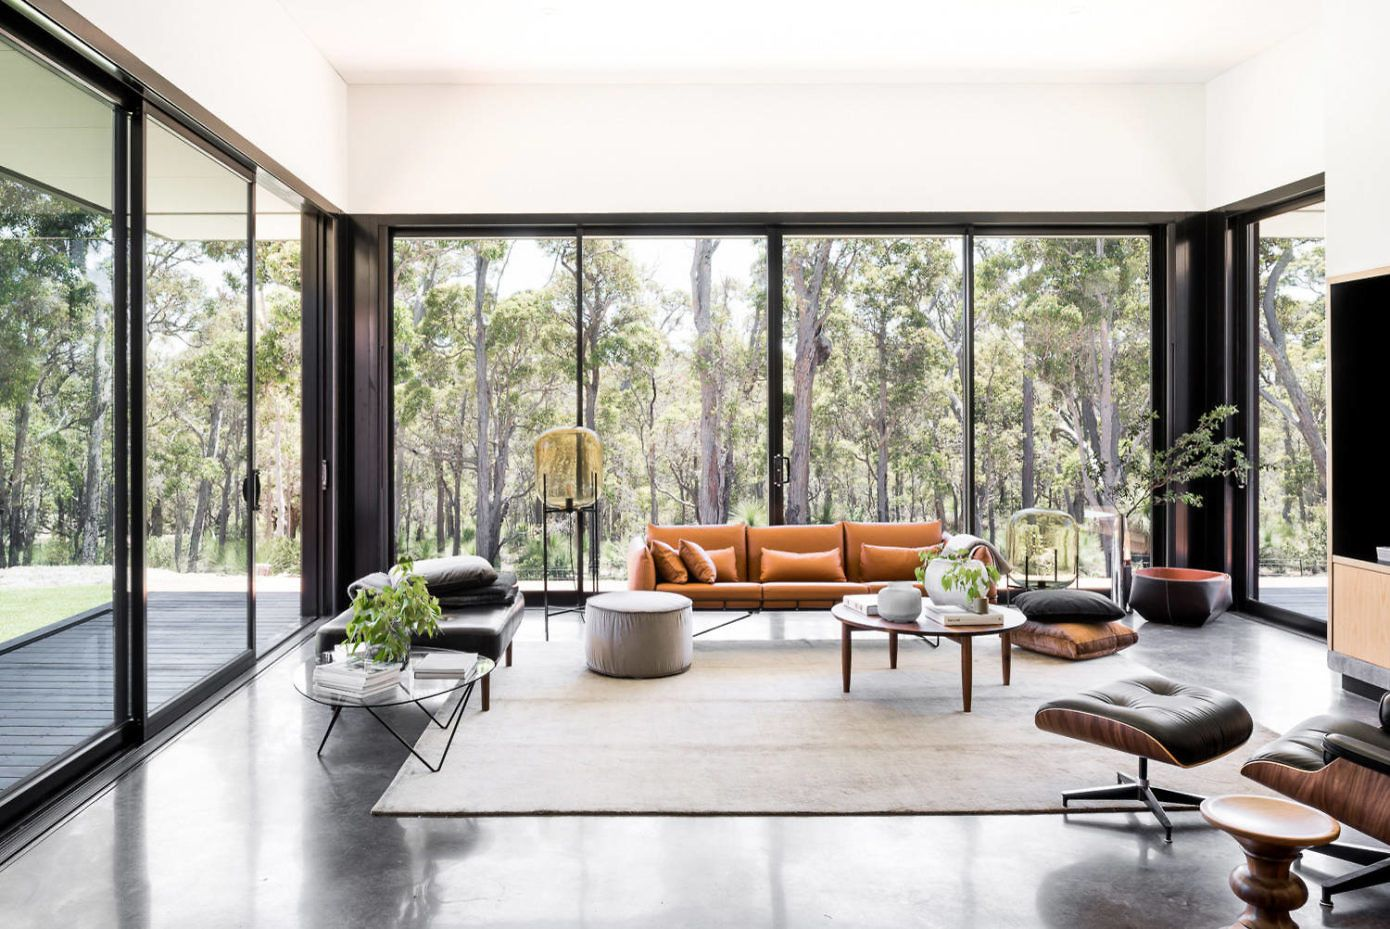 Inspiring Single Family House Located In Western Australia Designed In 2016 By Tcr Design Contemporary Country Home Contemporary Home Decor Contemporary House Living room decor australia